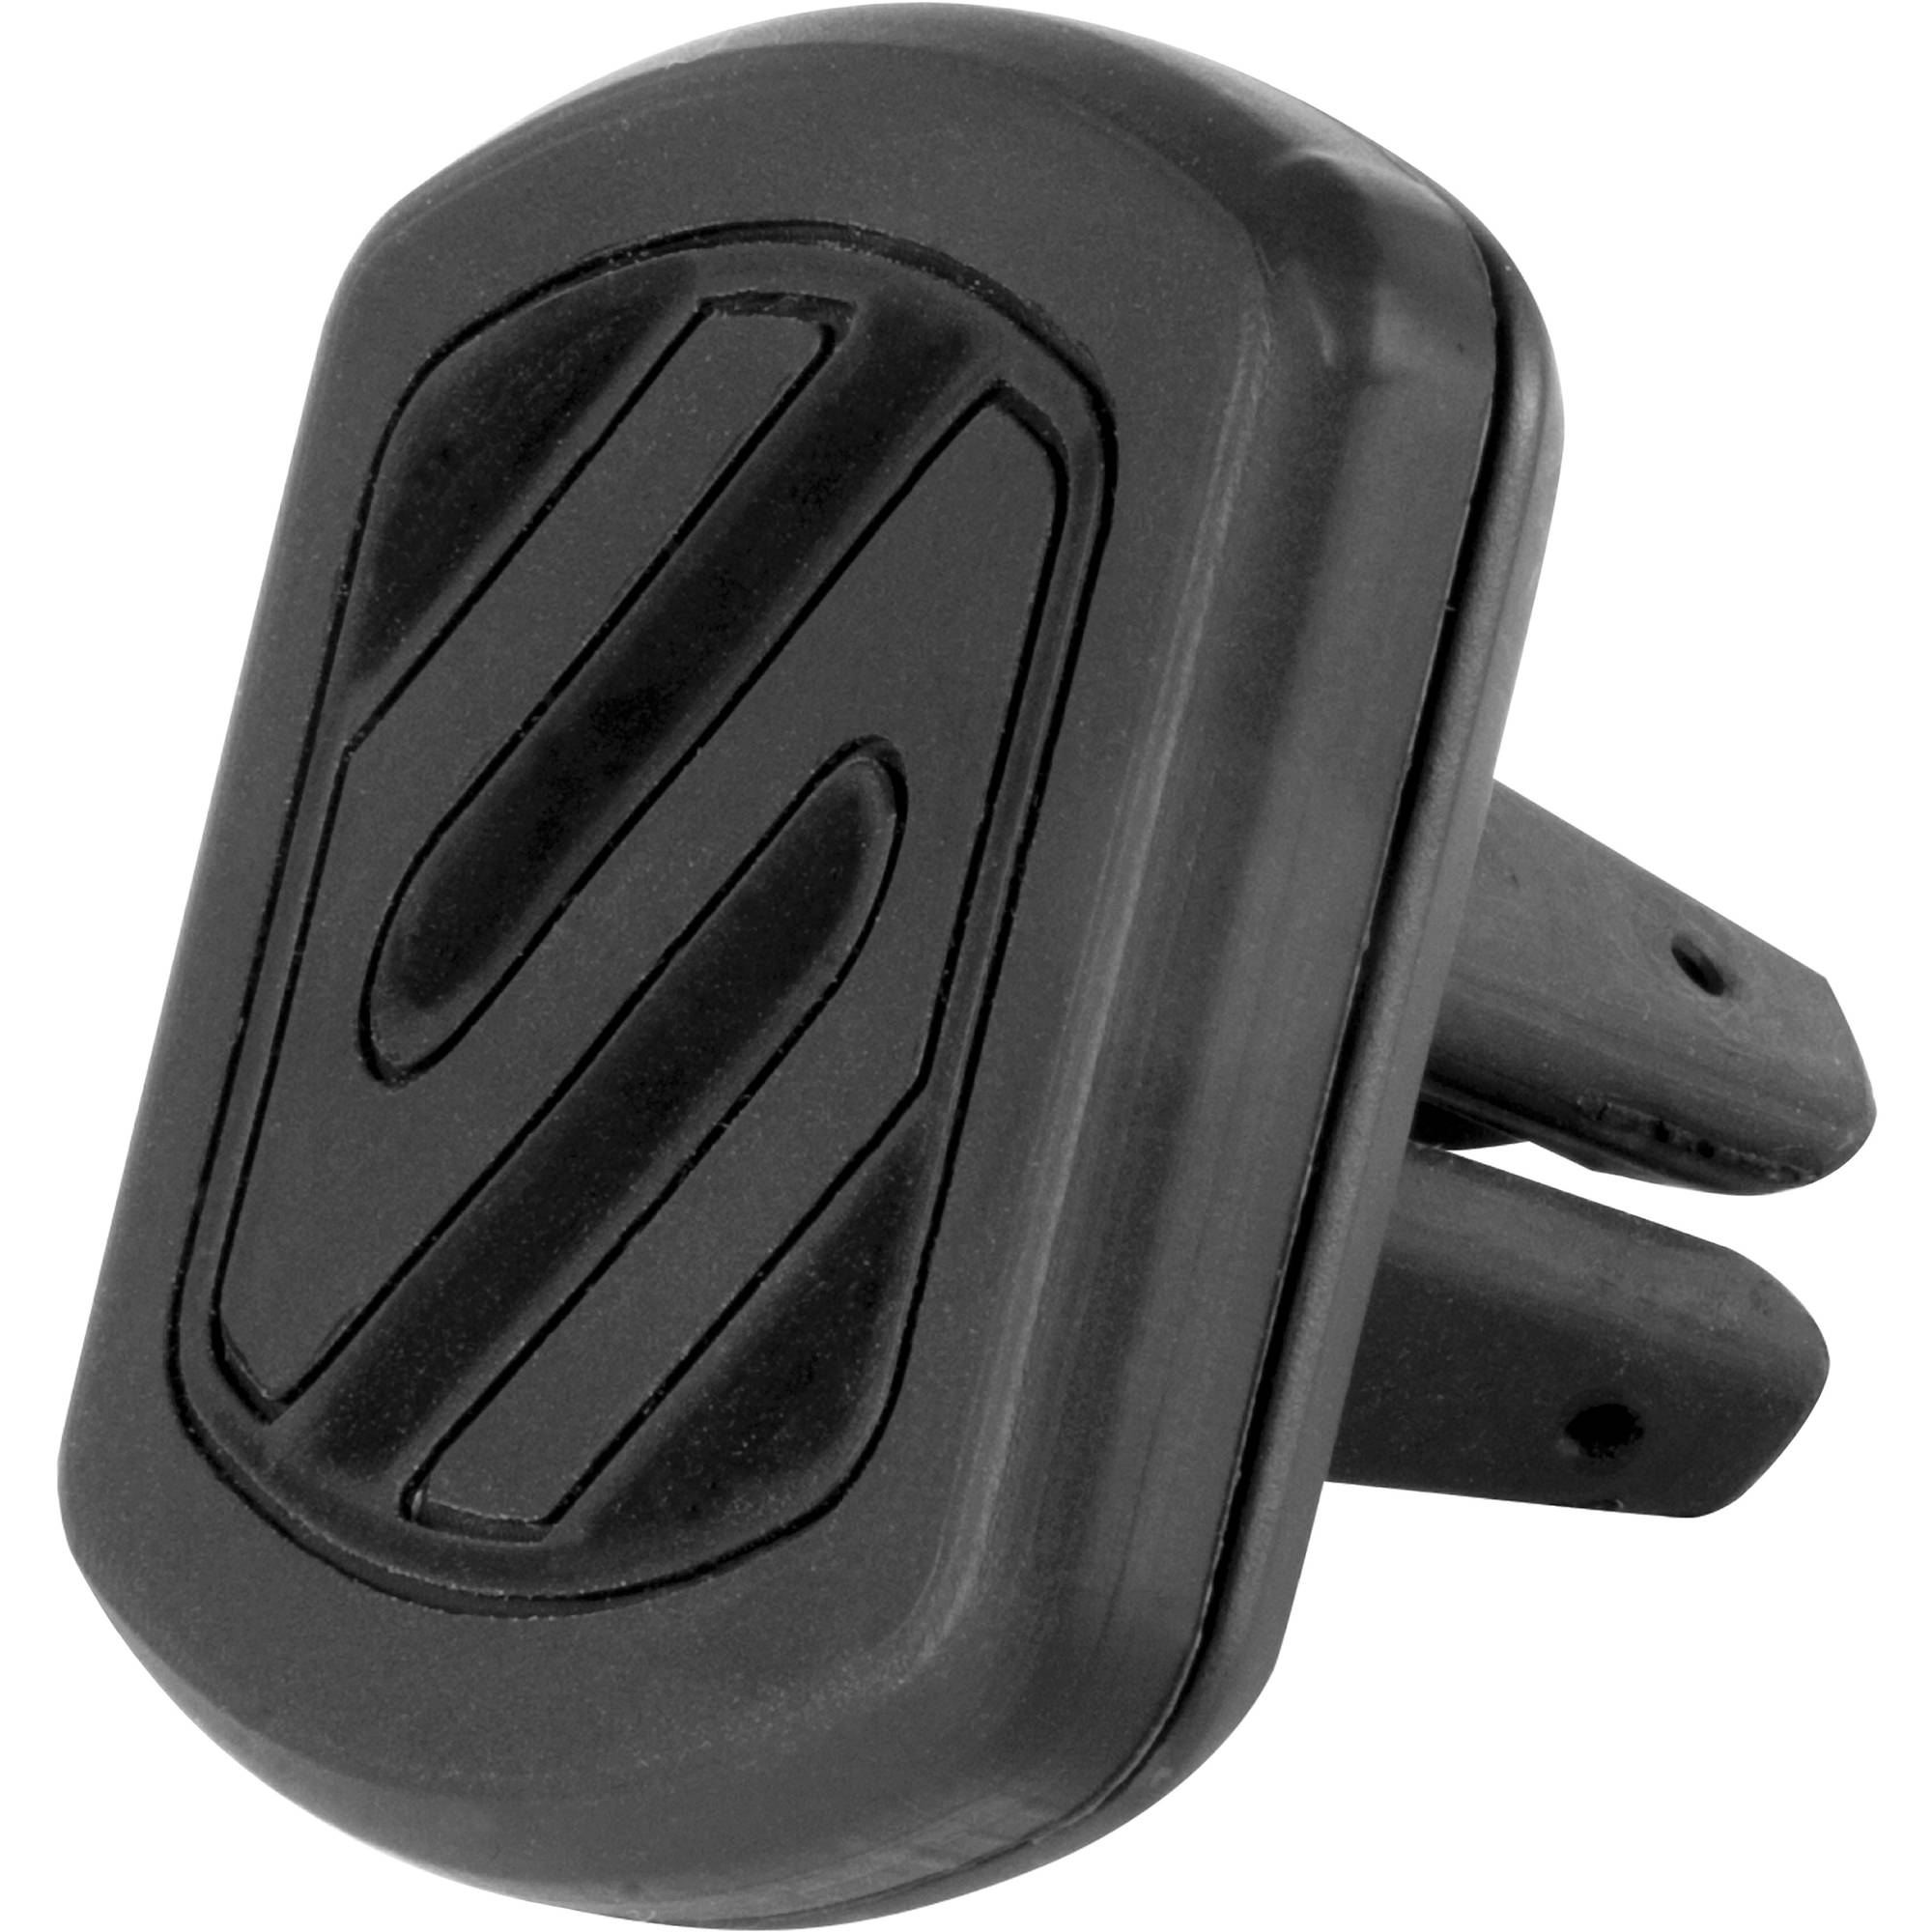 Scosche MagicMount™ Vent2: Magnetic Mount for Mobile Devices (MAGVM2R)